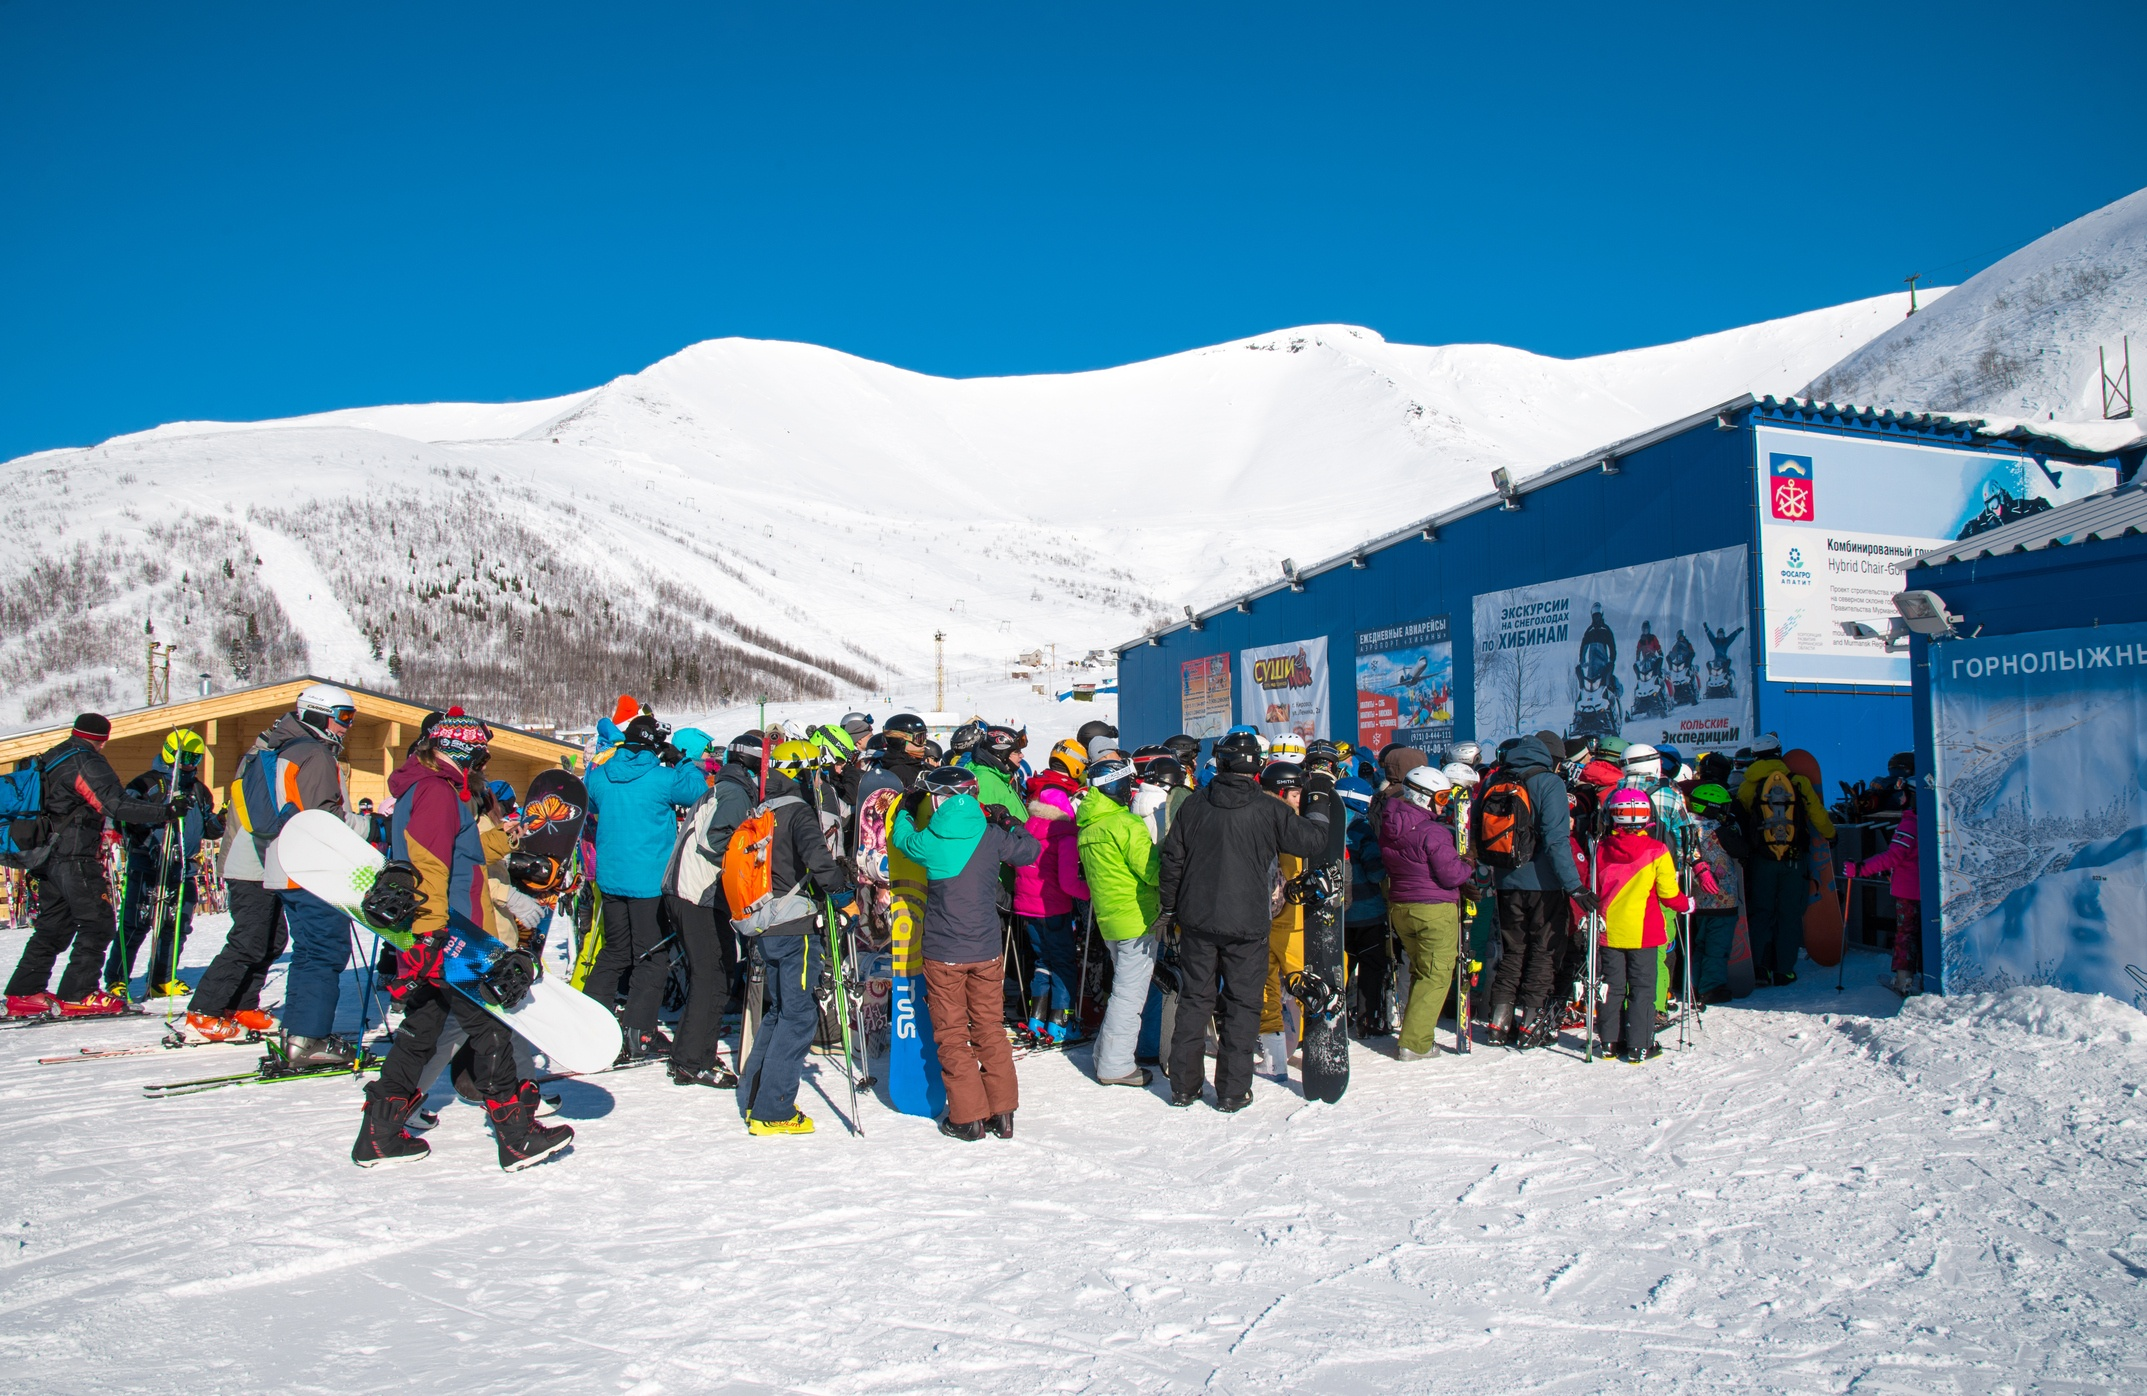 Skiers queue to the lift in ski resort, a lot of people. North Russia, Khibiny Mountains